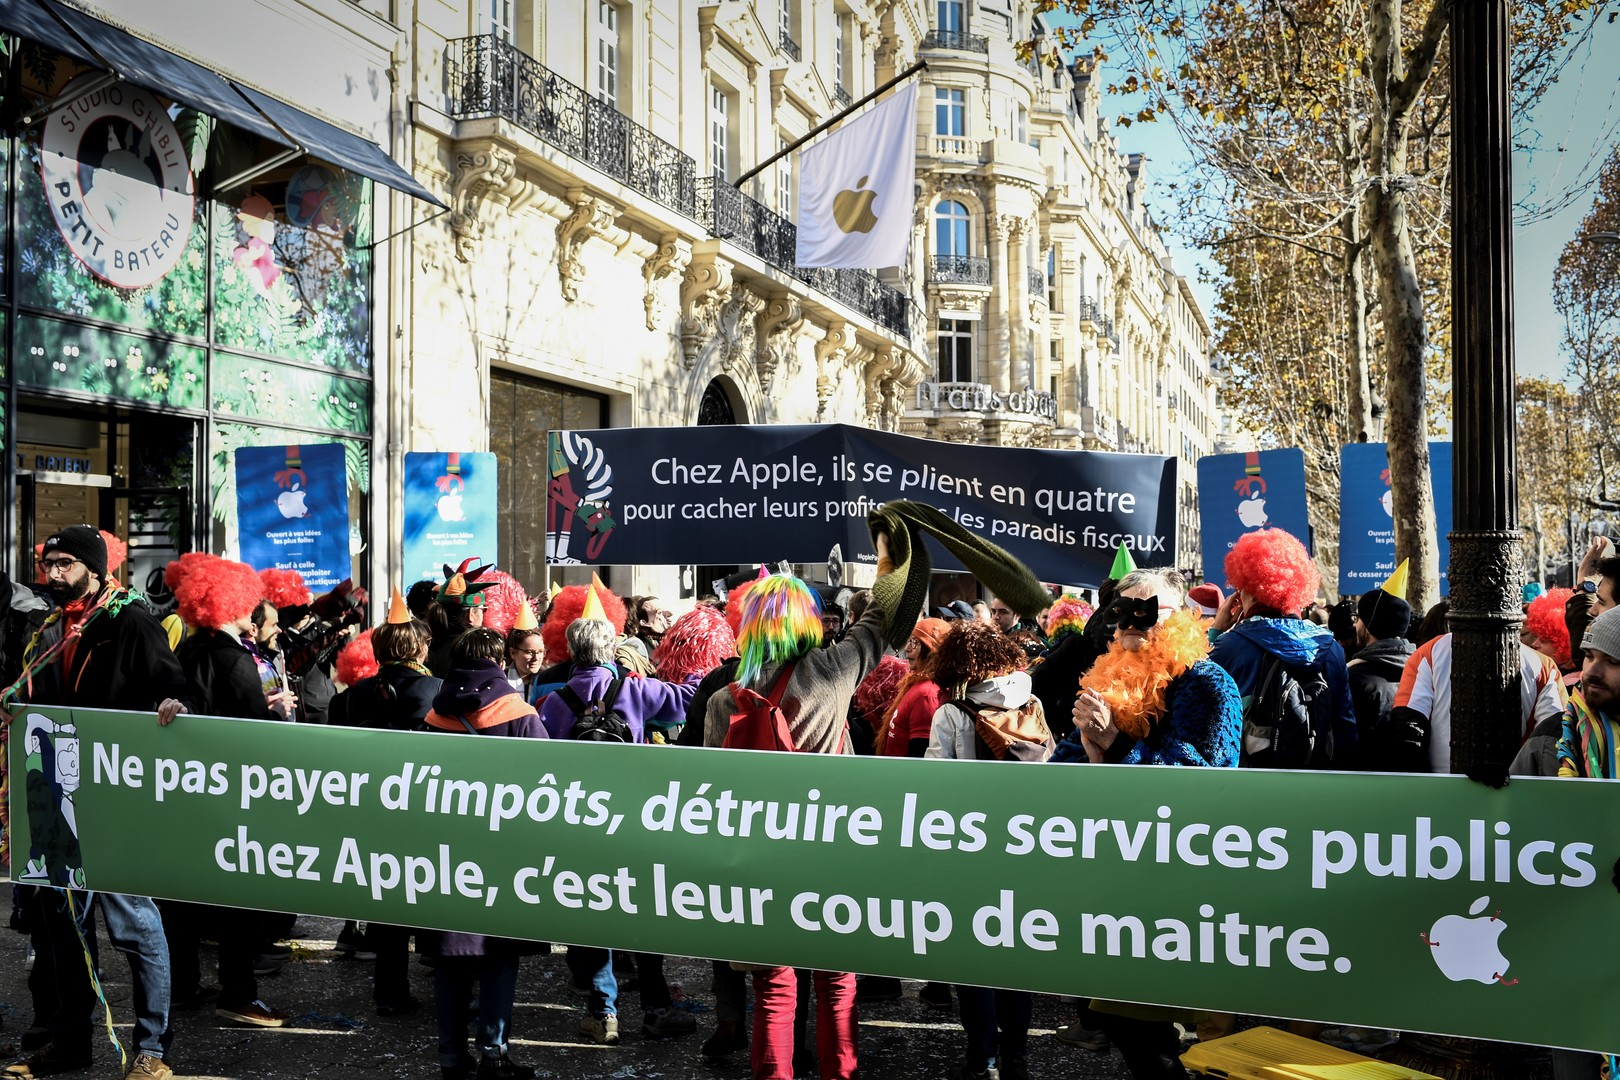 High tech: Manifestation à Paris contre Apple,